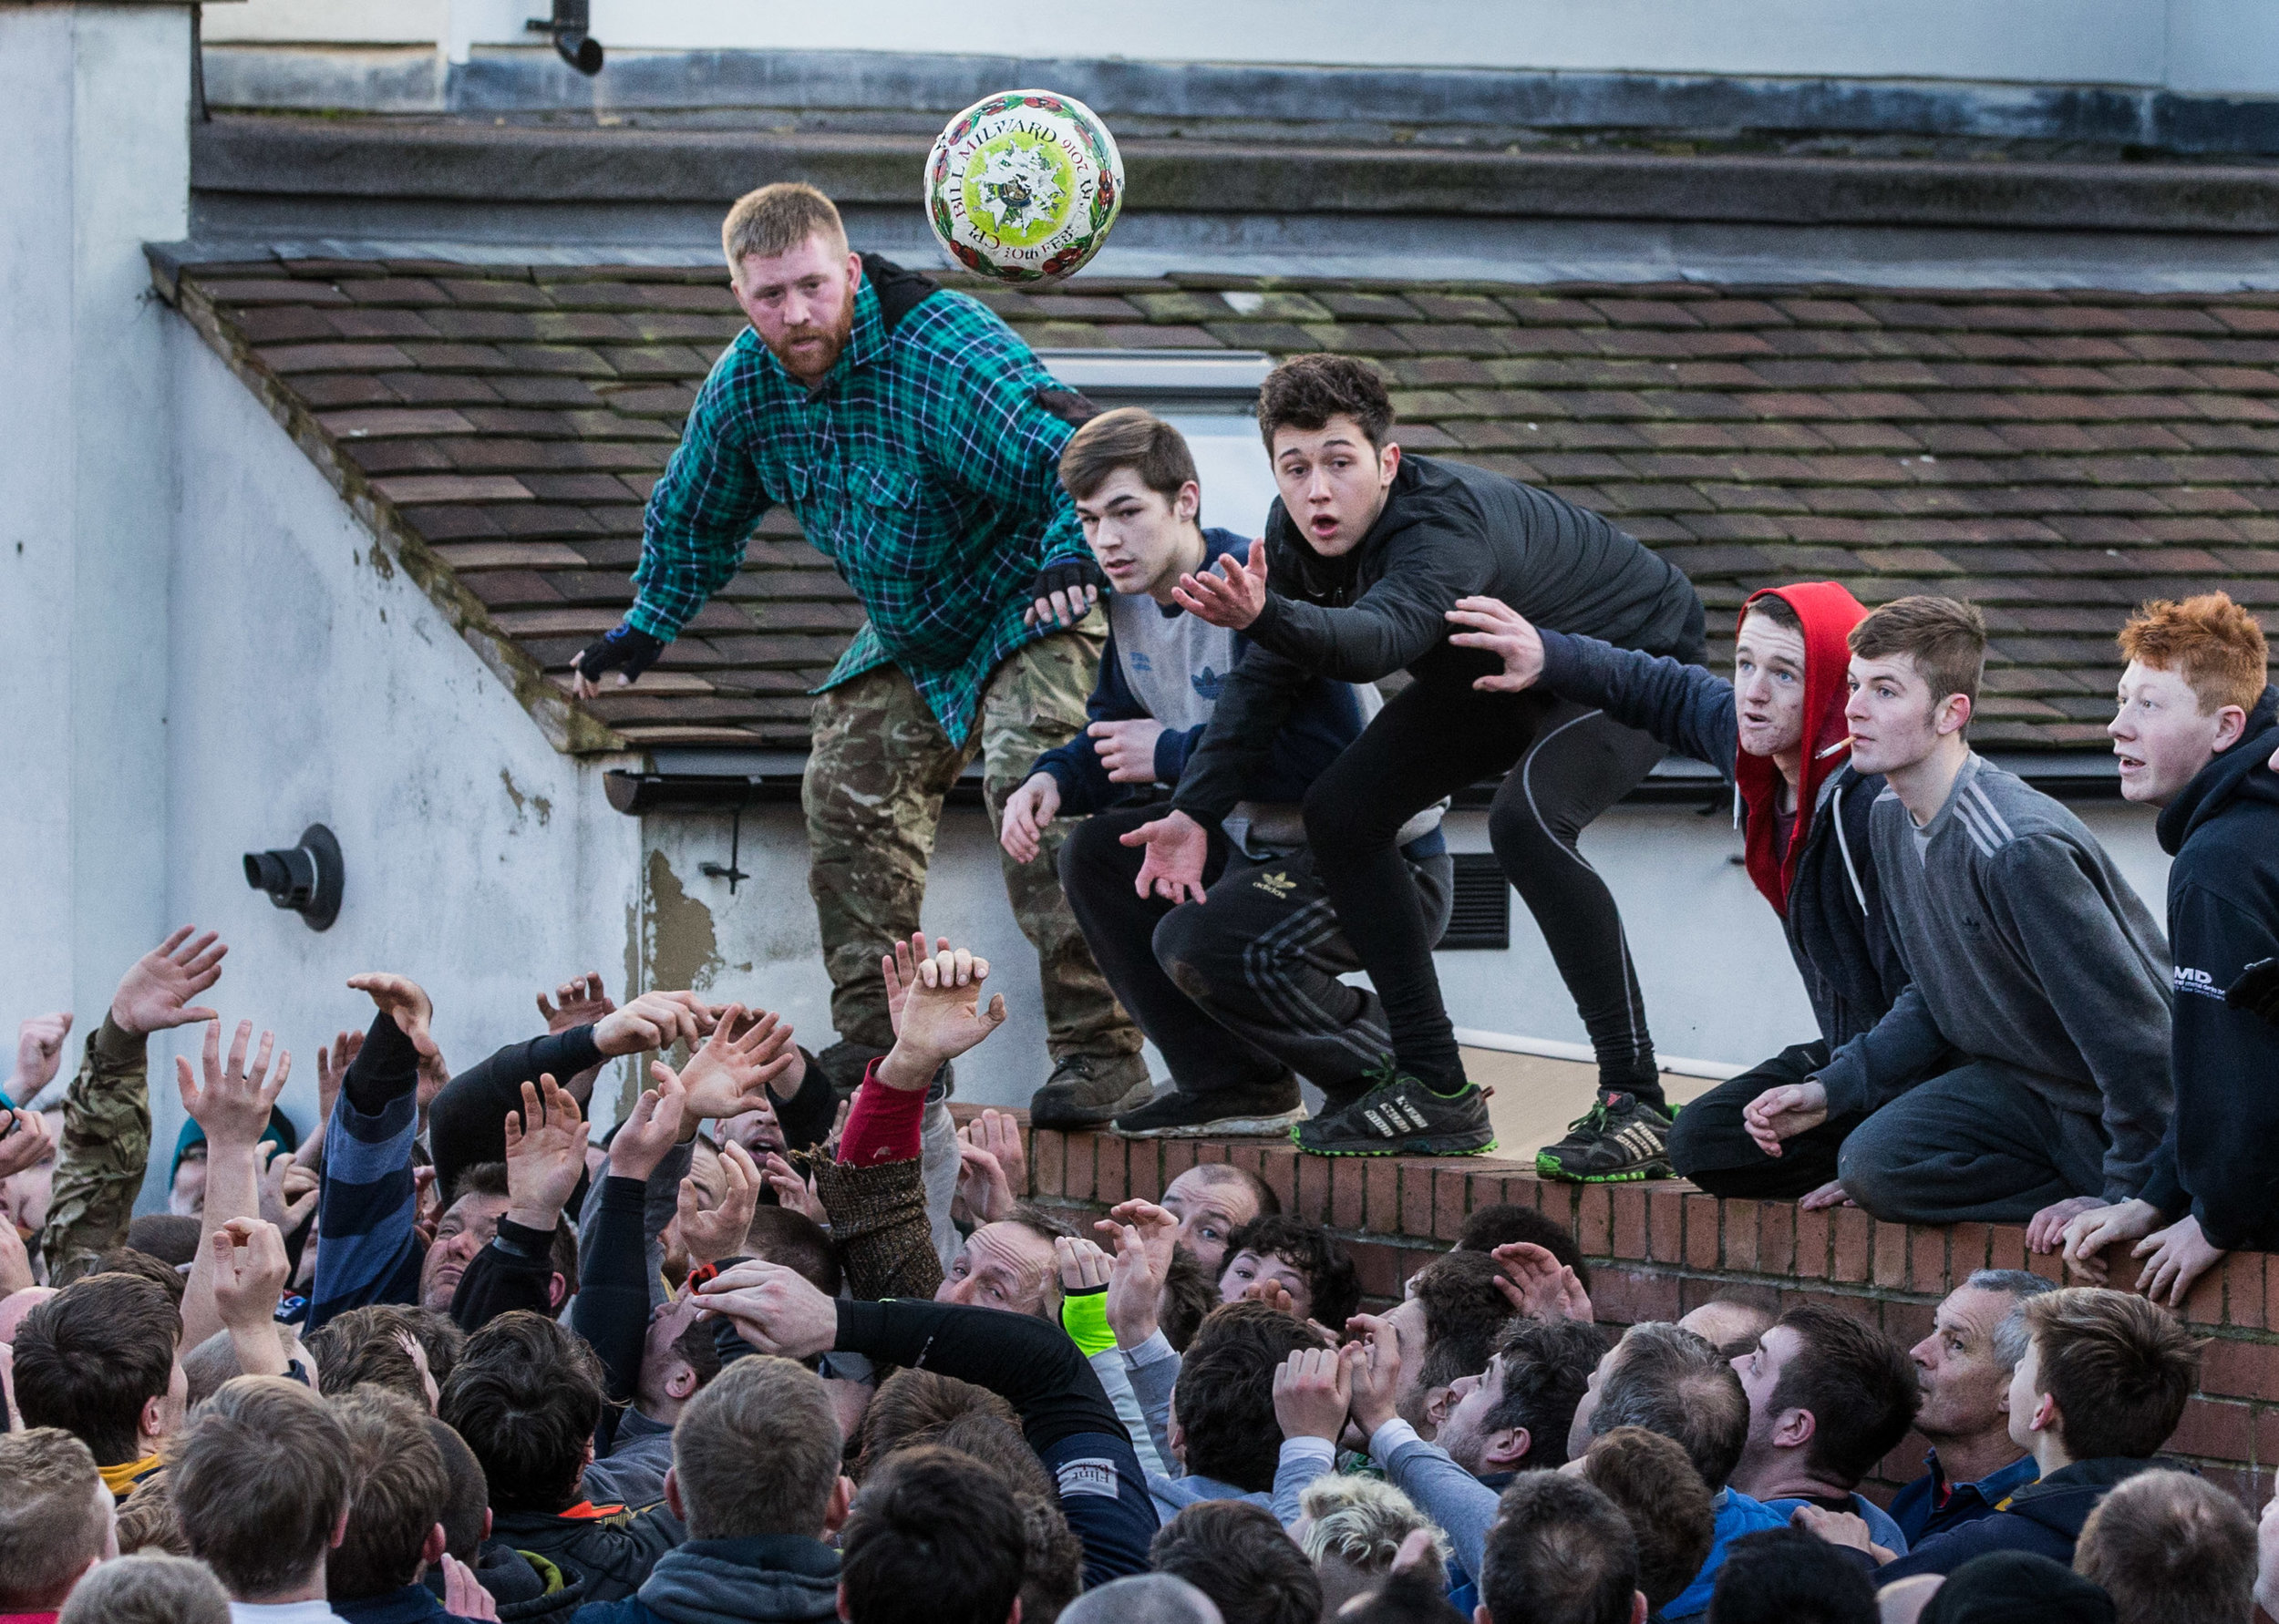 Participants watch as the ball is thrown during Shrovetide football in Ashbourne